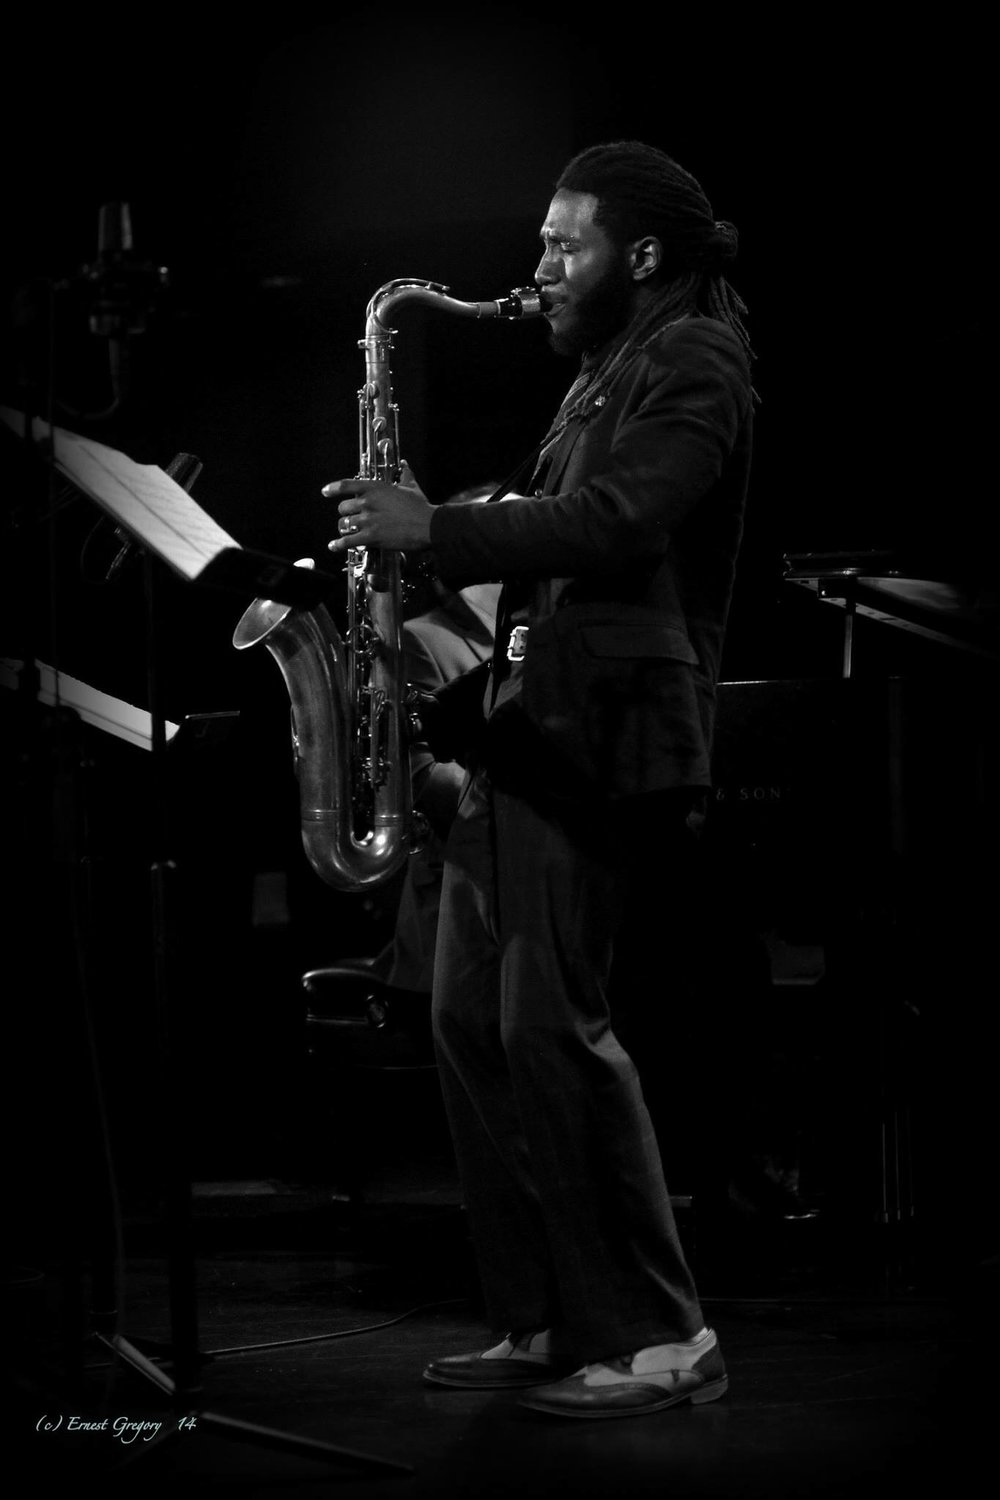 Stephen J Gladney - Tenor Saxophone and EWI (Electronic Wind Instrument) Photo Courtesy of Ernest Gregory